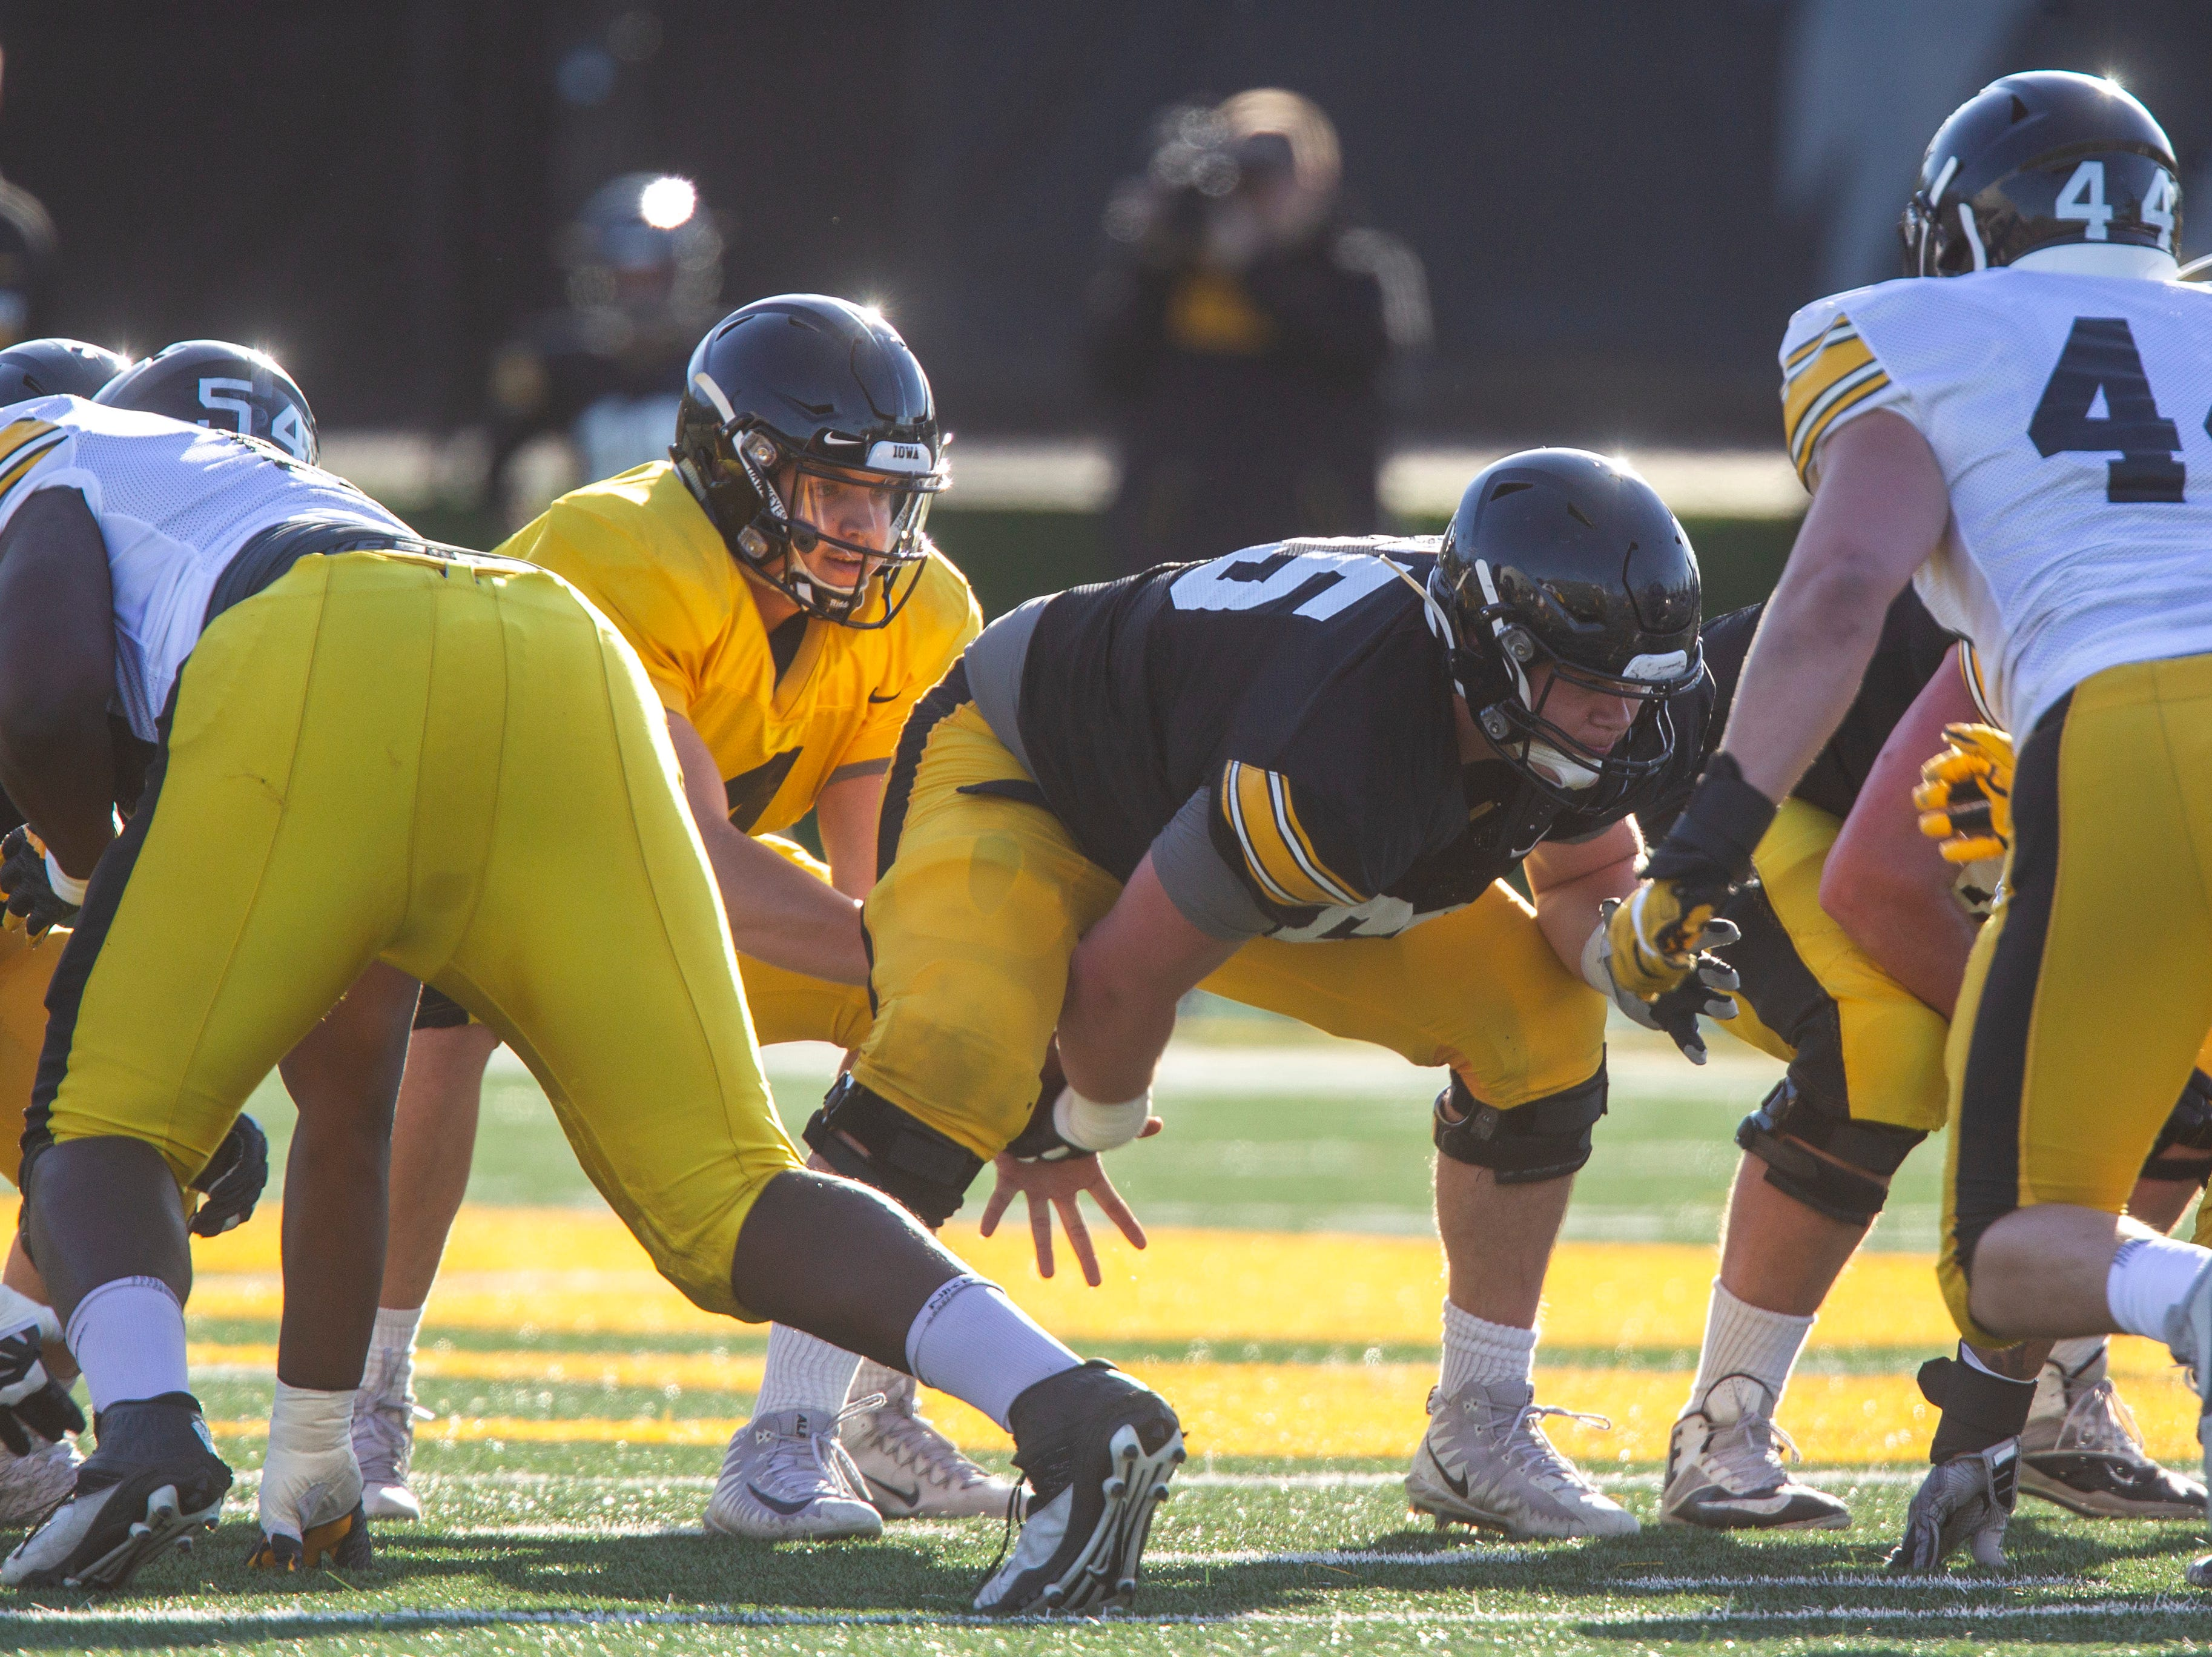 Iowa center Tyler Linderbaum (65) snaps the ball to quarterback Nate Stanley (4) during the final spring football practice, Friday, April 26, 2019, at the University of Iowa outdoor practice facility in Iowa City, Iowa.